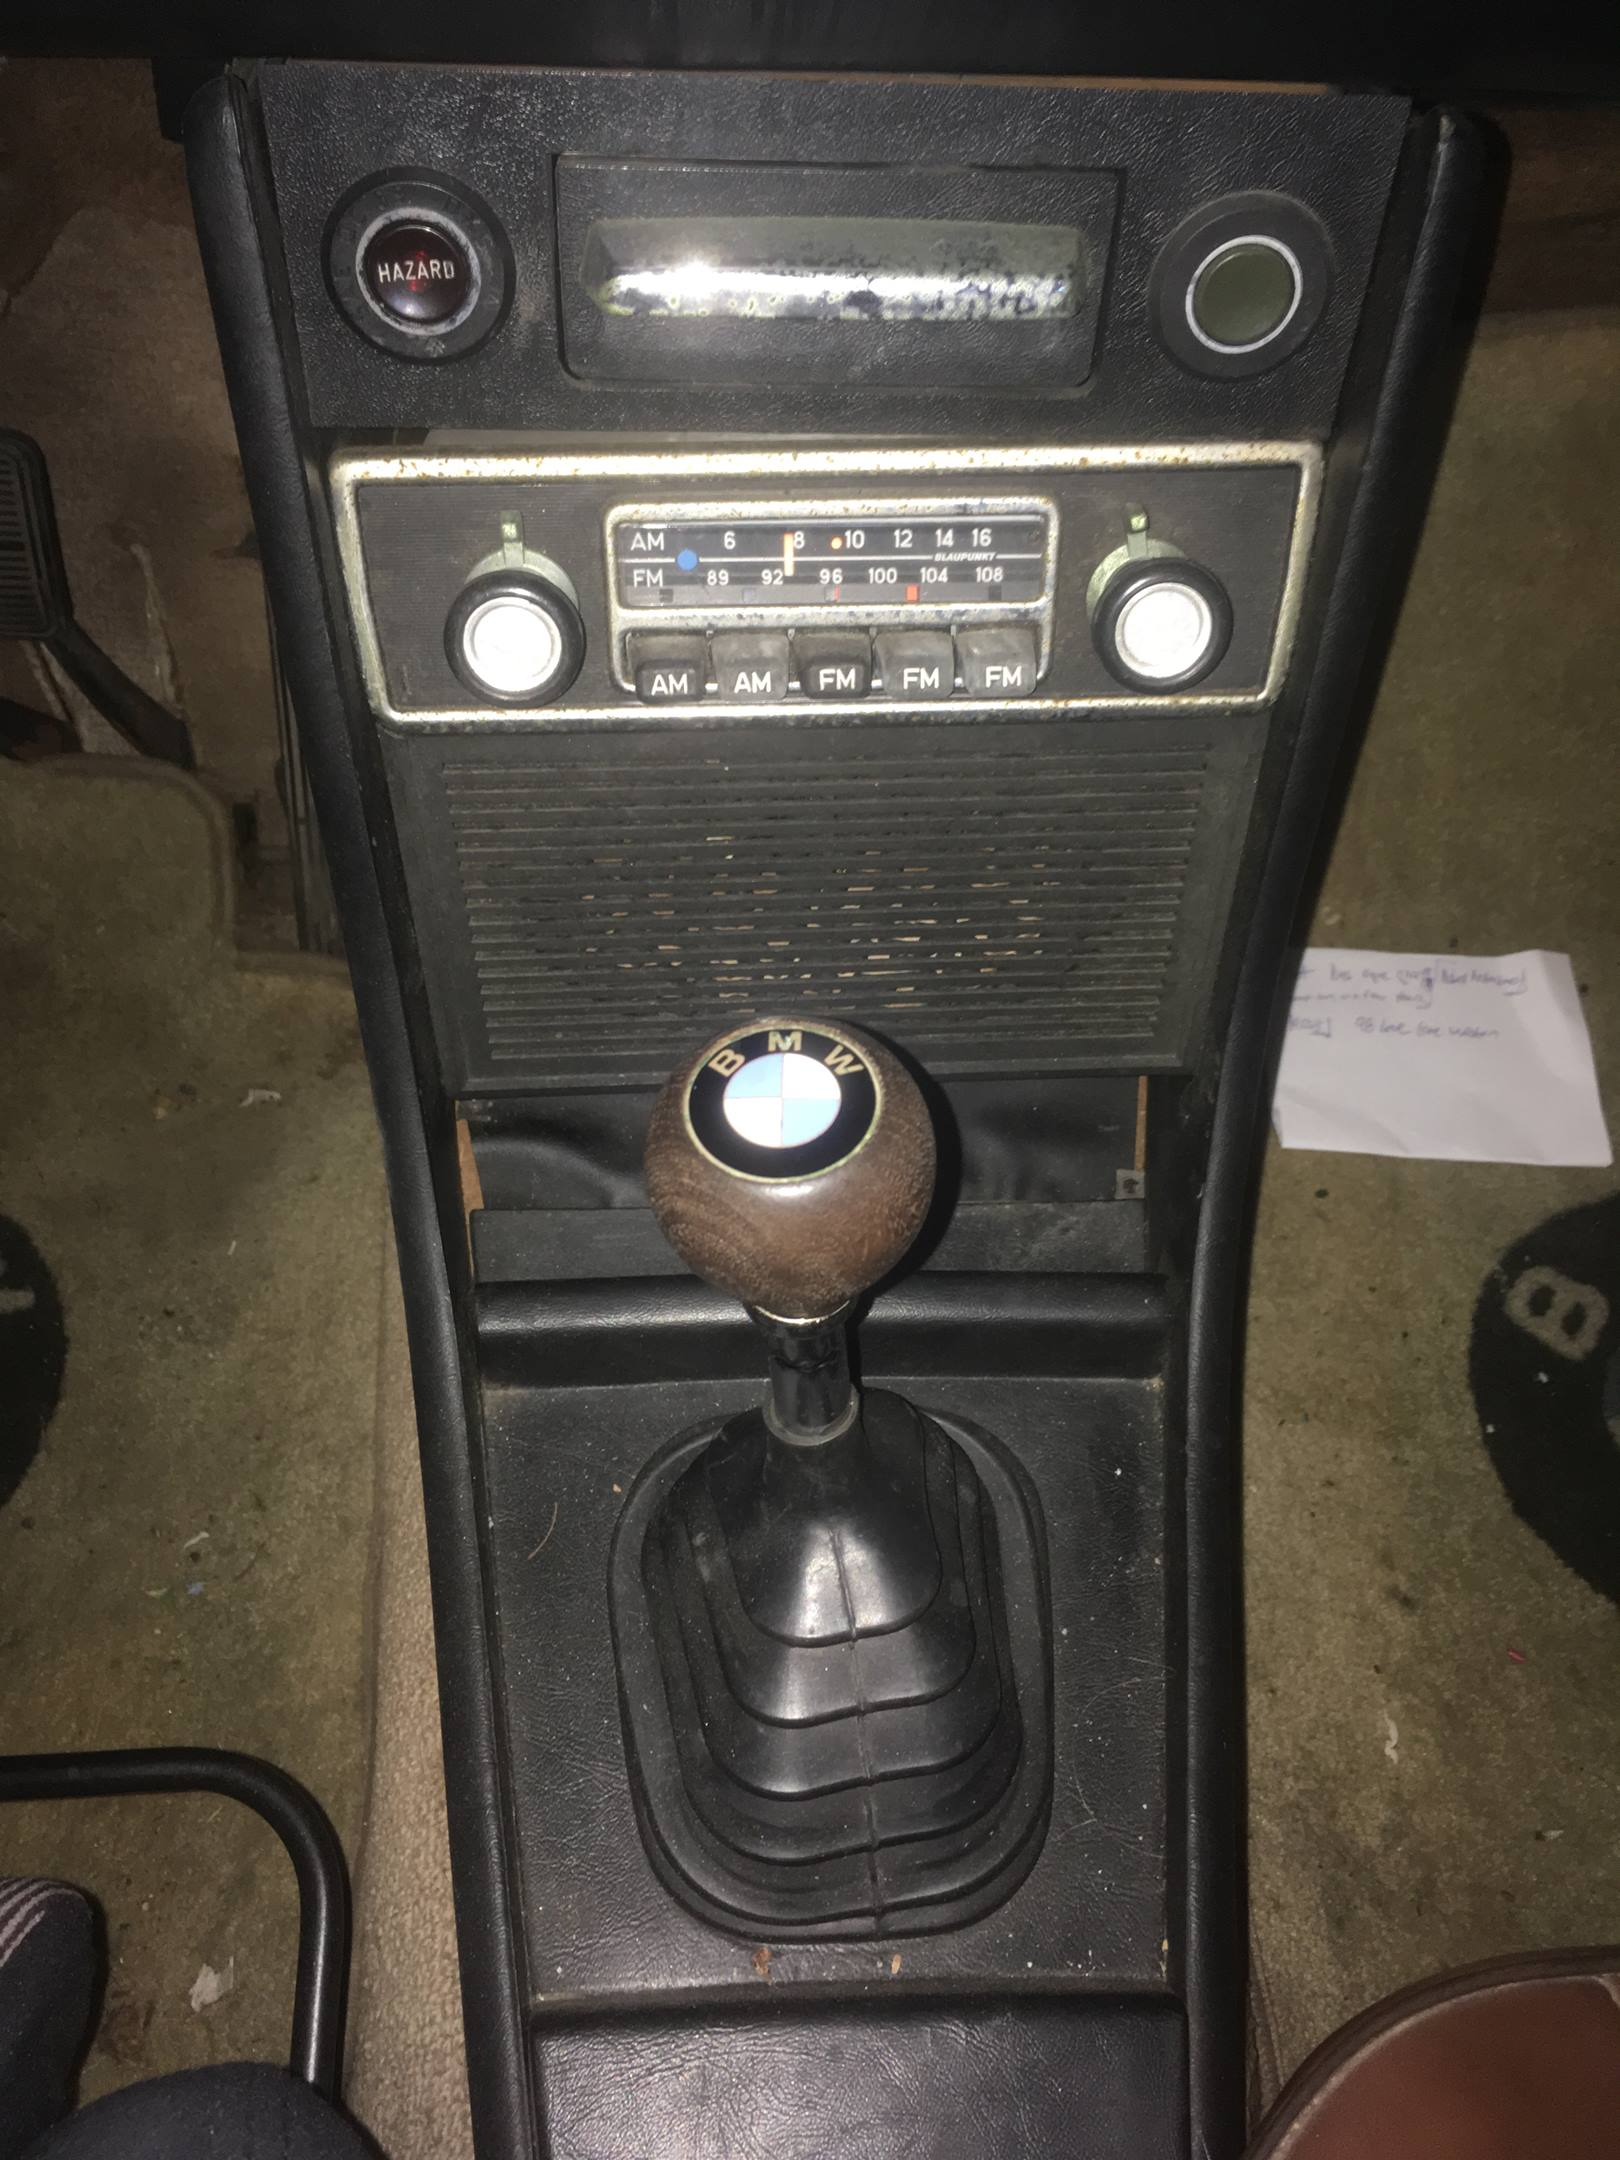 Even a beat-up original radio adds to the authentic landscape of a vintage car's interior.